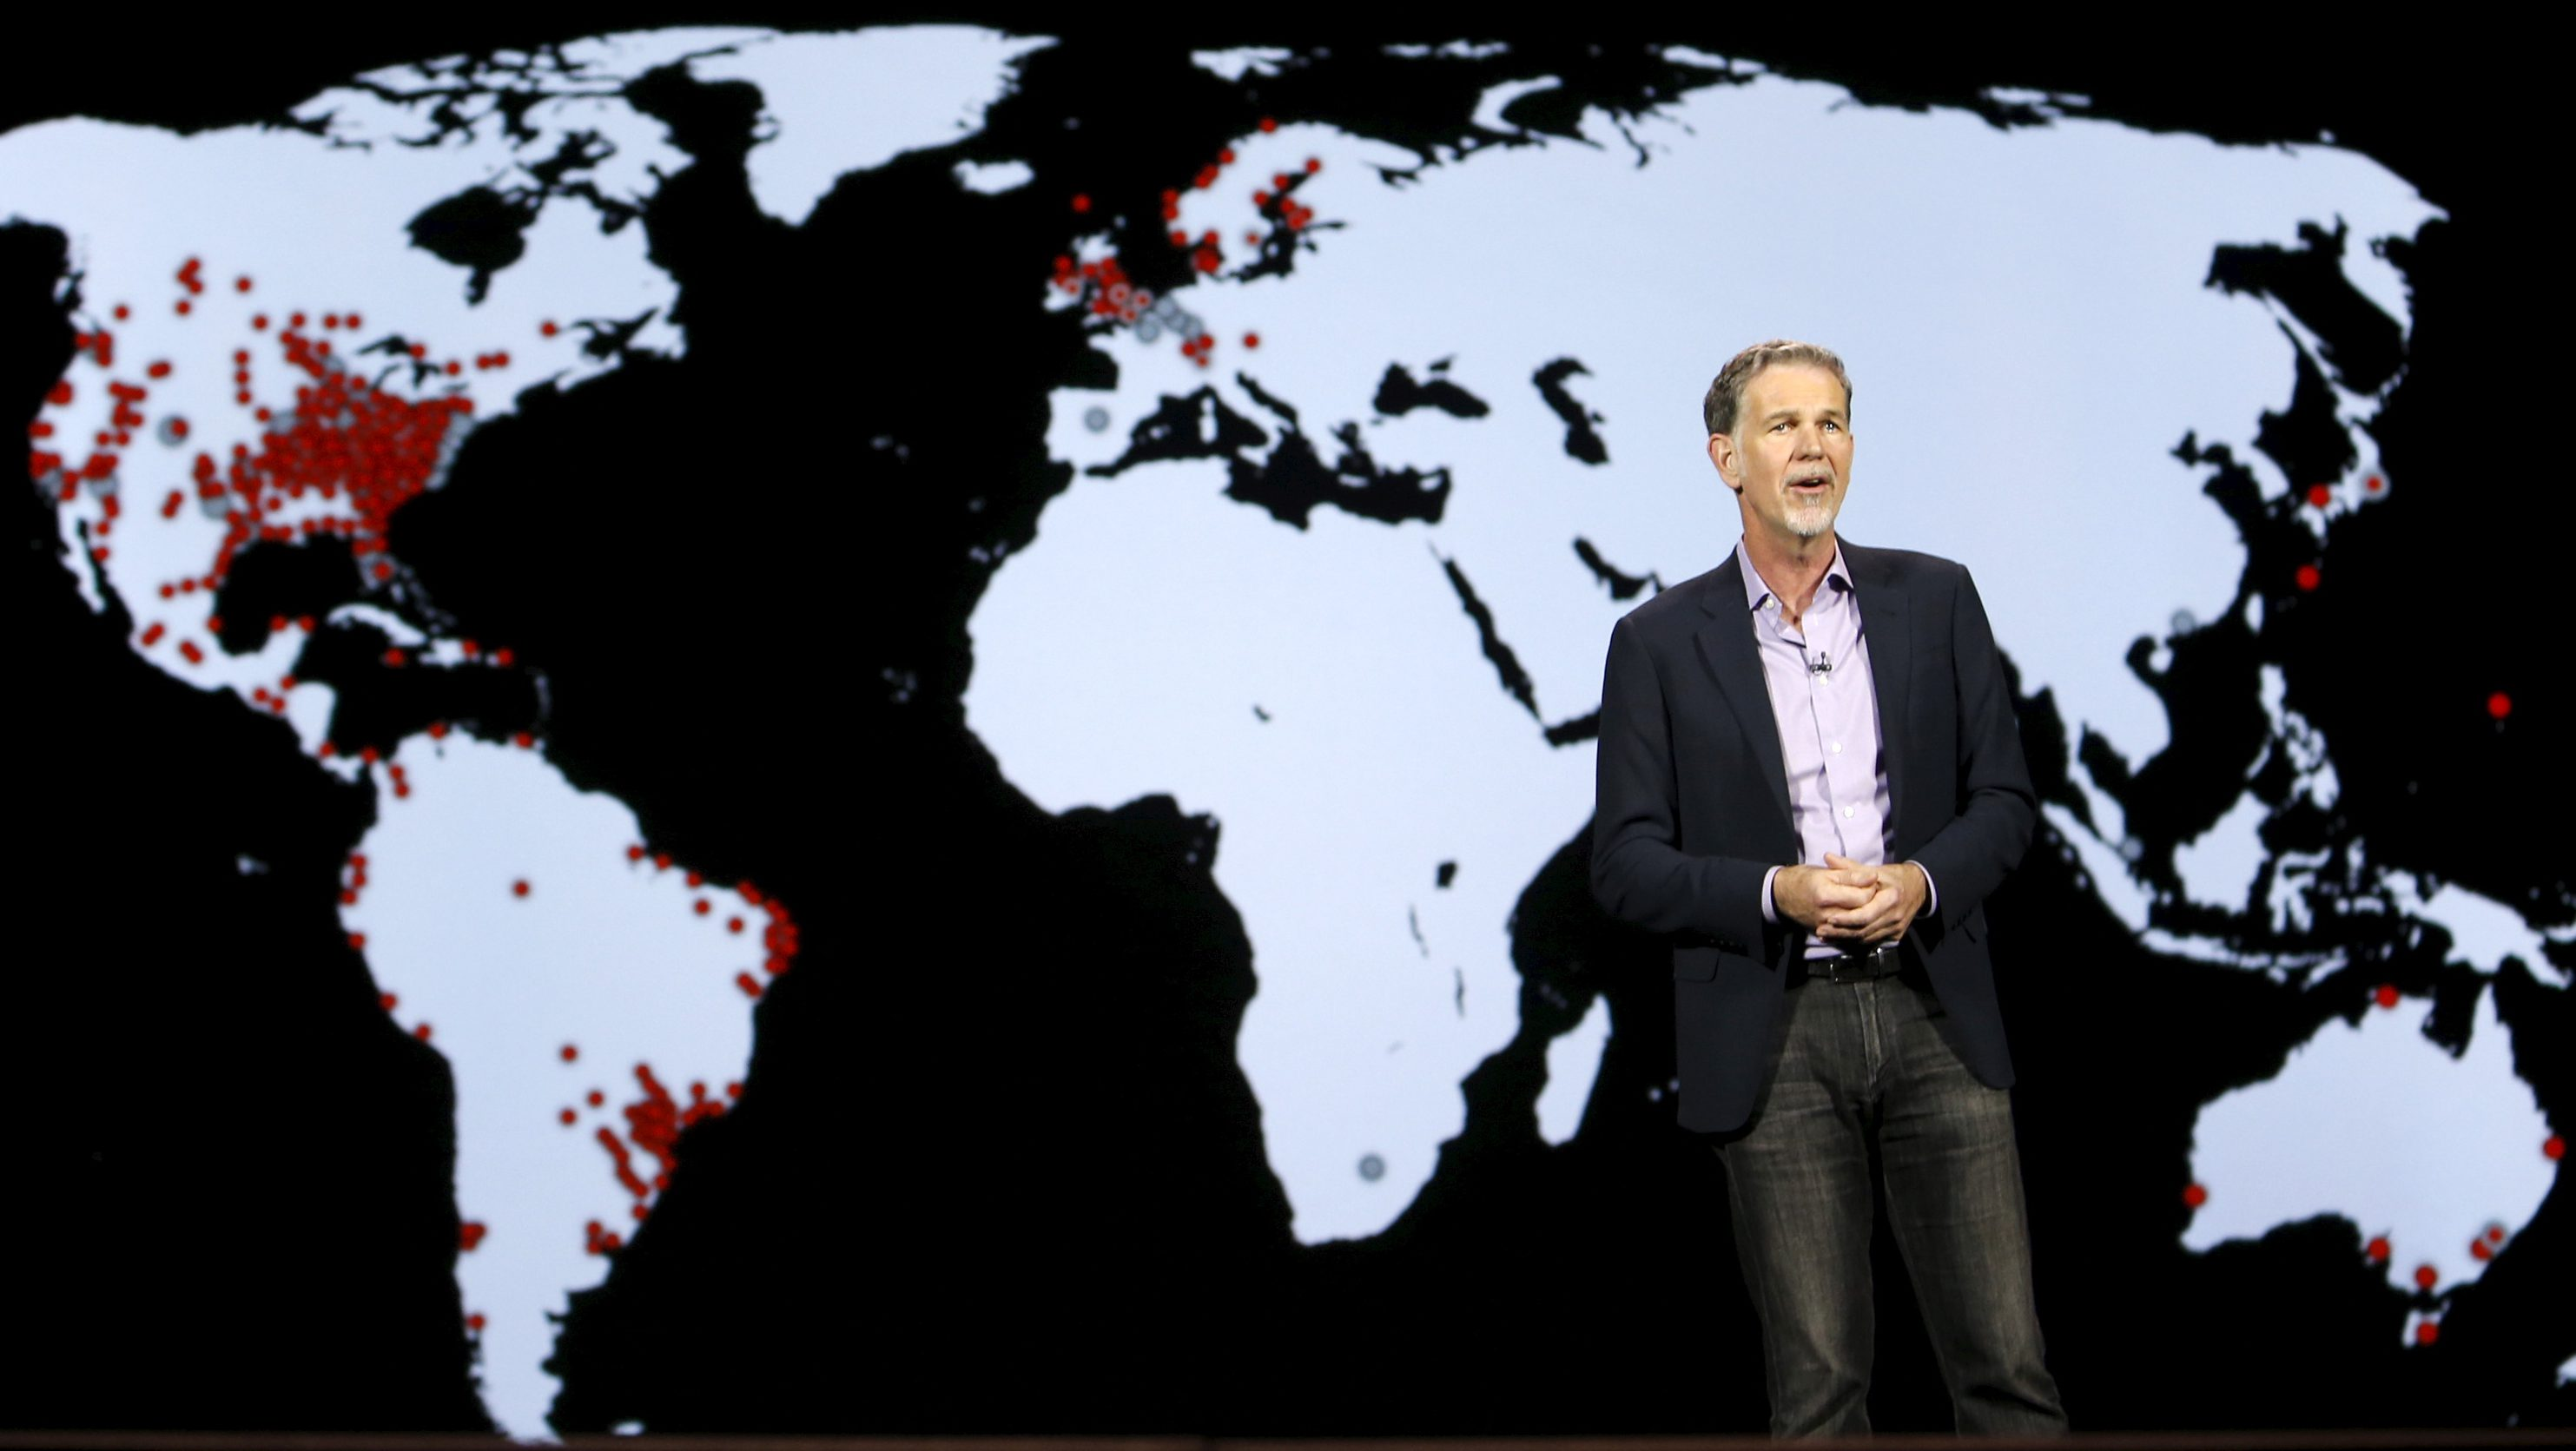 Reed Hastings, co-founder and CEO of Netflix, speaks during a keynote address at the 2016 CES trade show in Las Vegas, Nevada January 6, 2016.  REUTERS/Steve Marcus - GF10000284886